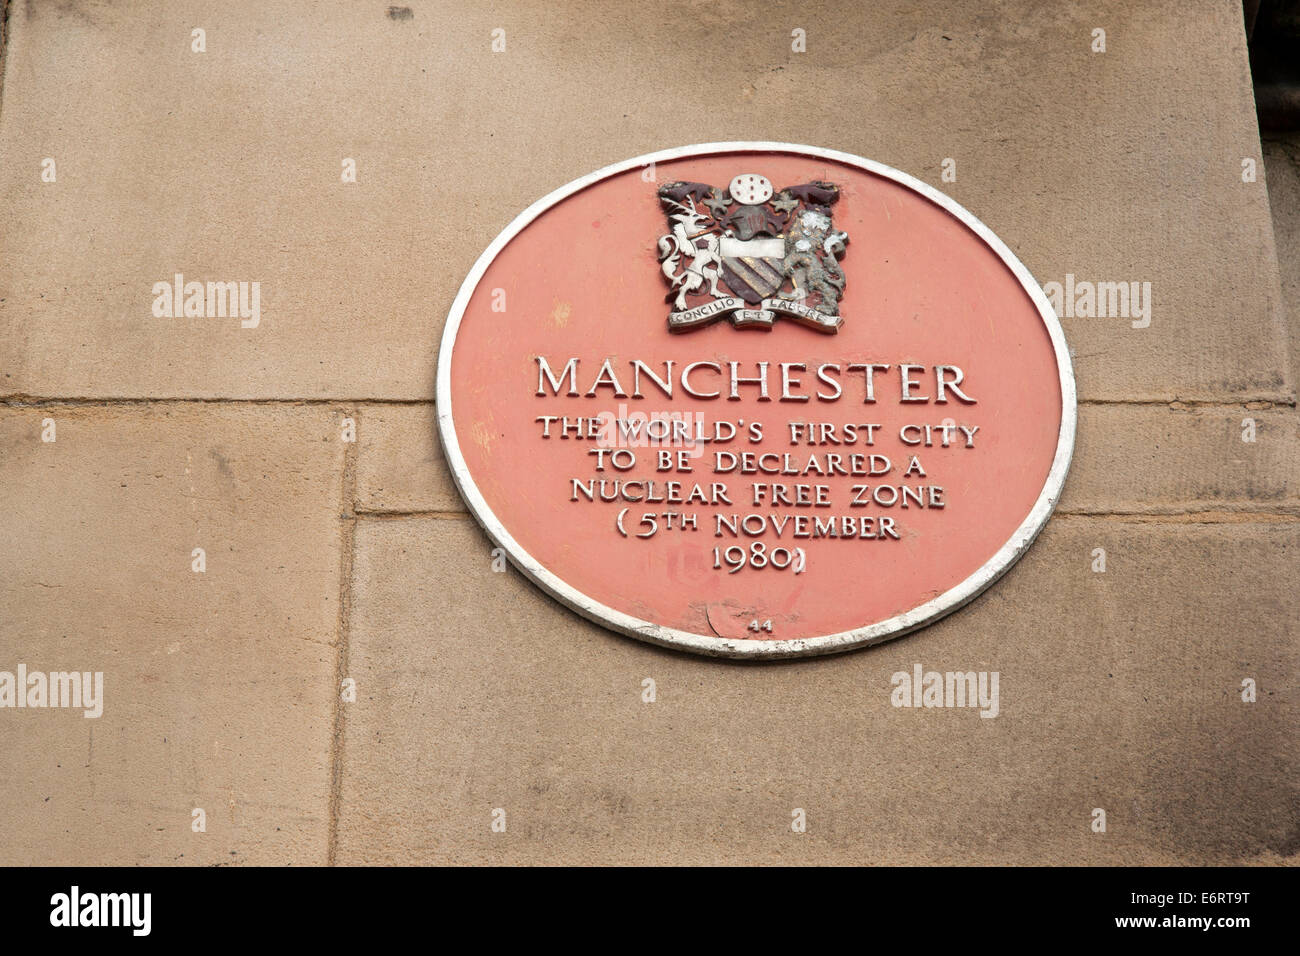 Nuclear Free Zonew Plaque on Town Hall, Manchester by Waterhouse (1877), England, UK - Stock Image